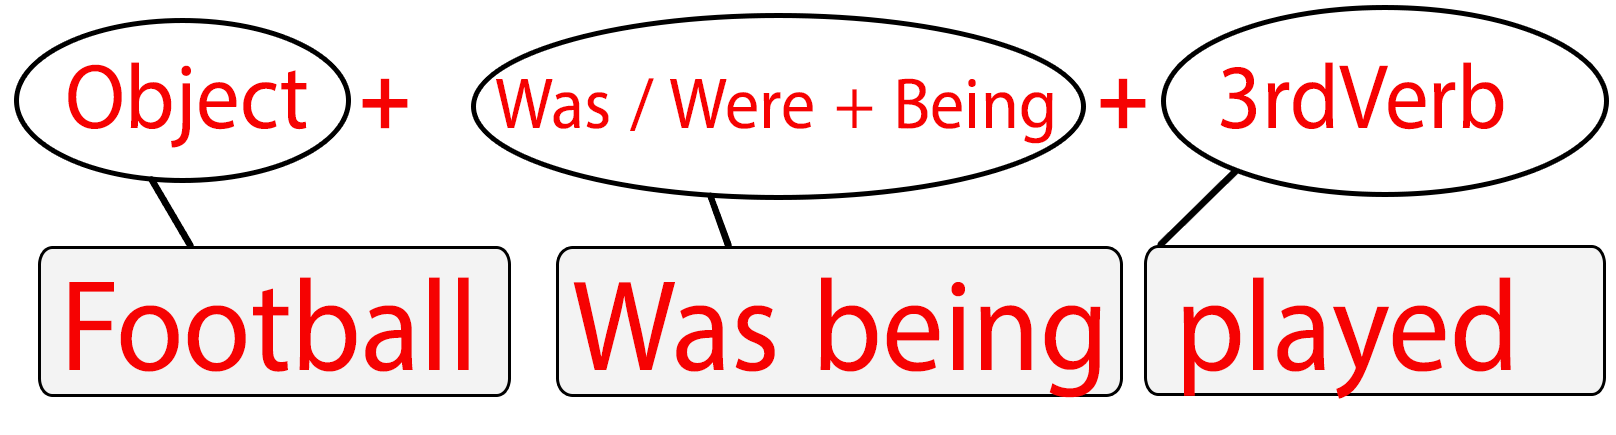 Past Continuous Tense - Passive Voice | Exercises (With Pictures)